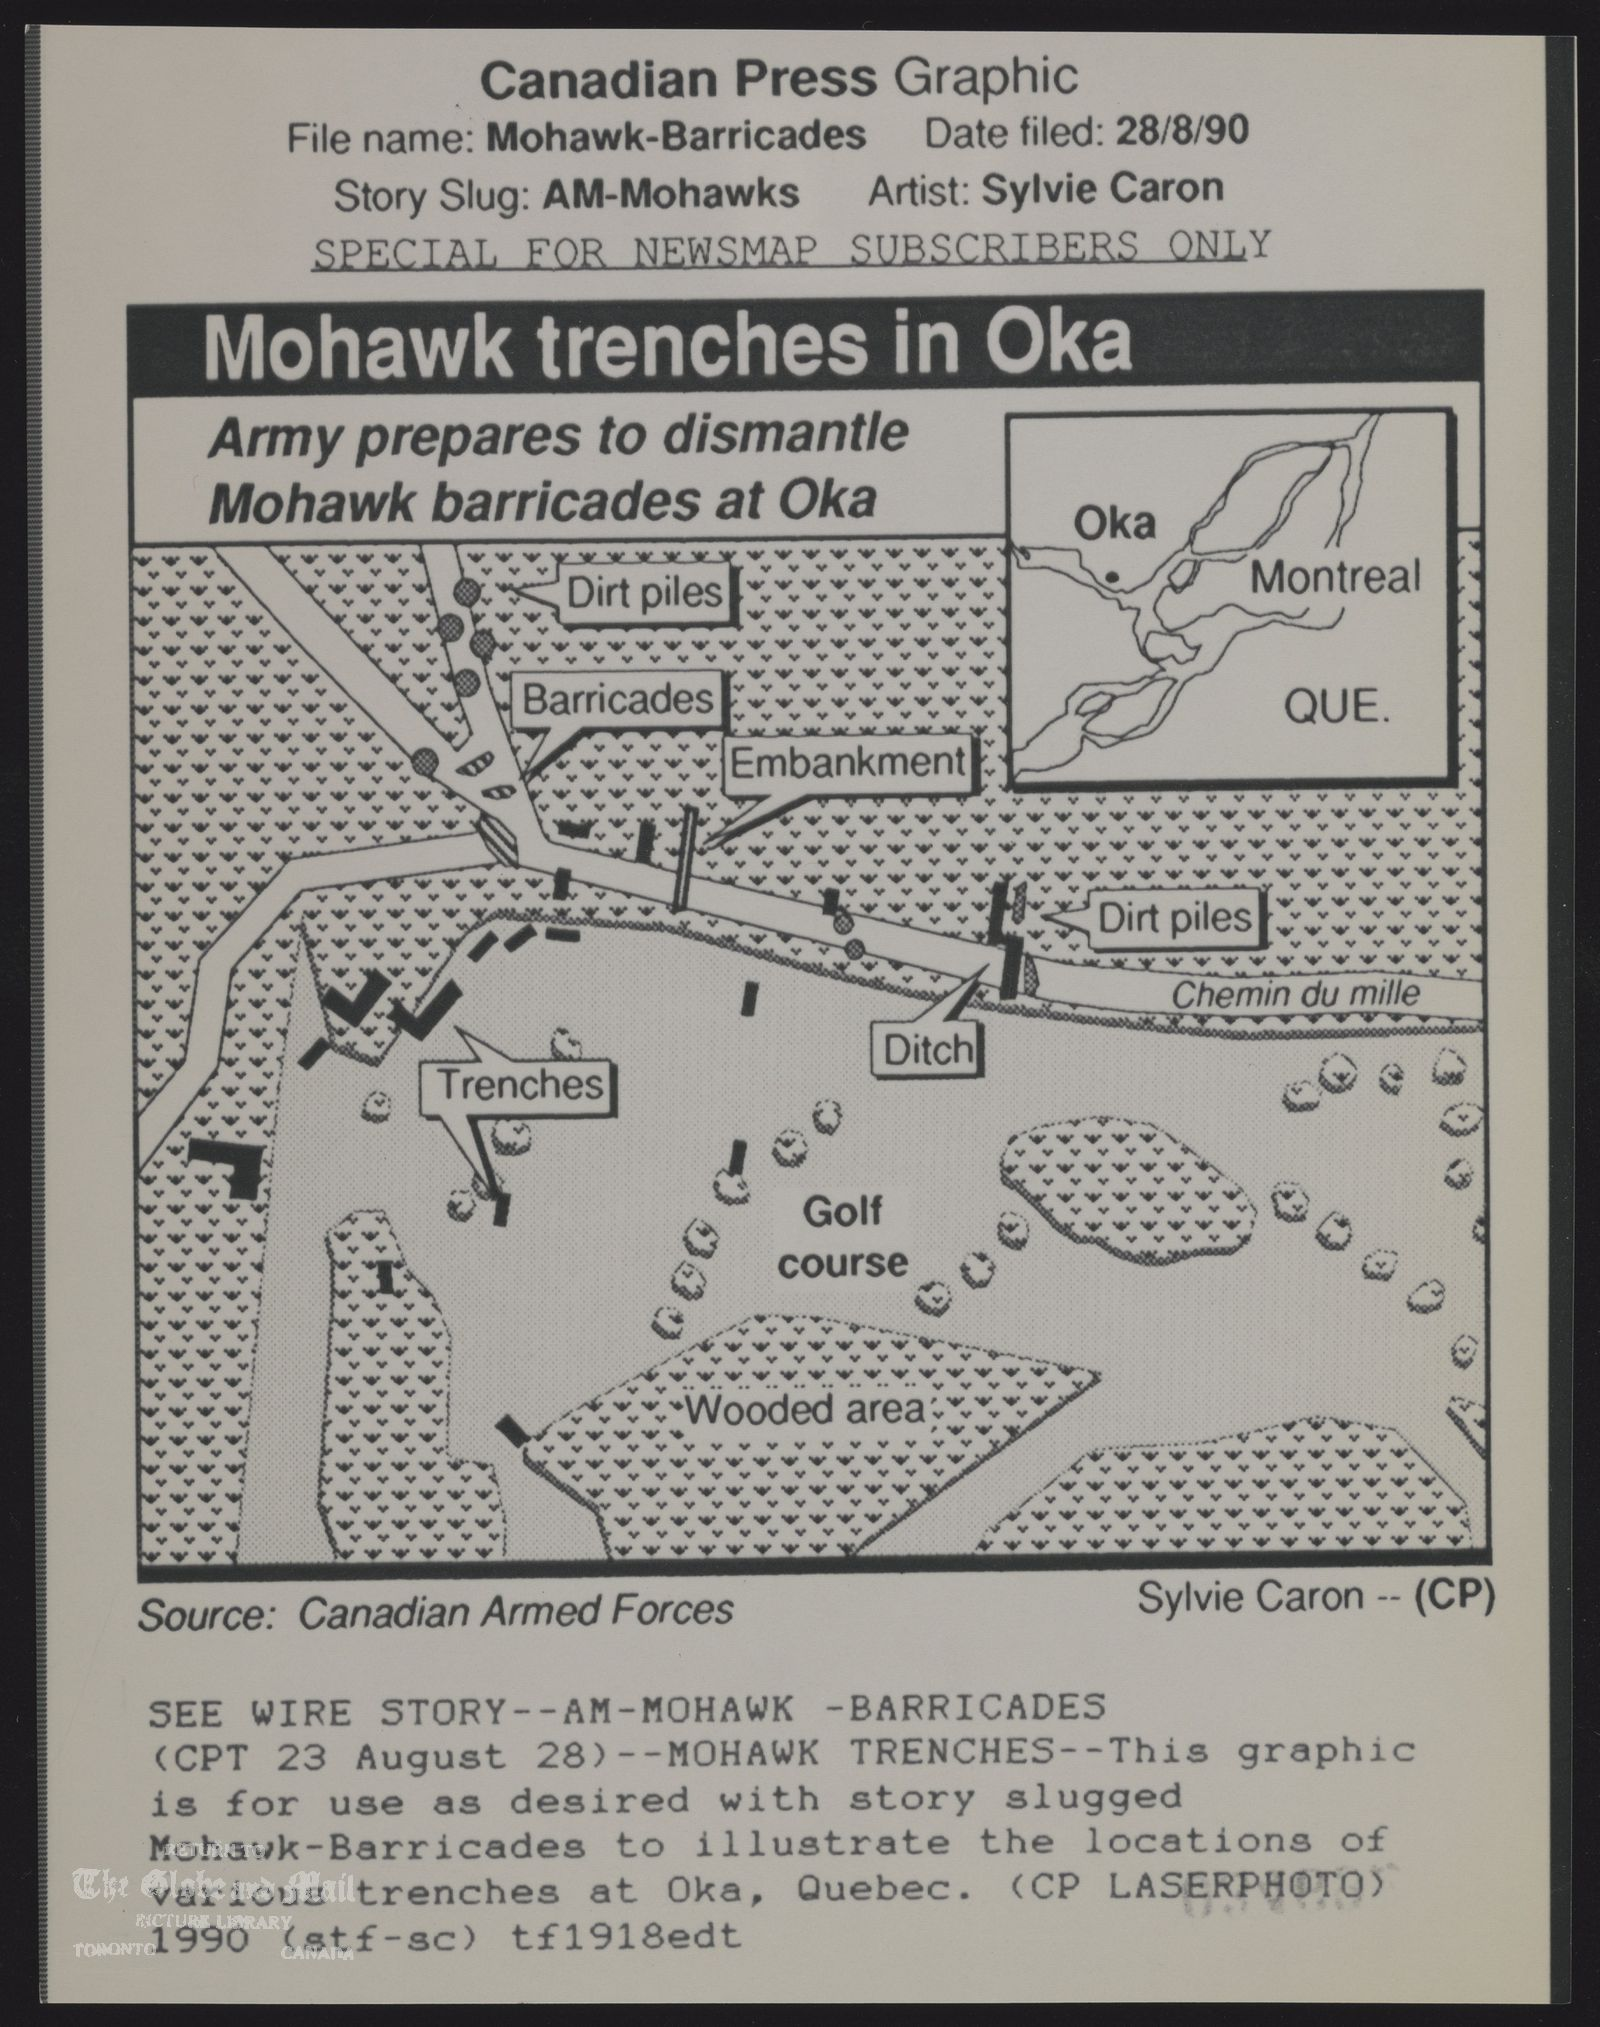 INDIANS Canada Mohawk Canadian Press Graphic File name Mohawk-Barricades Date filed 28/8/90 Story Slug: AM-Mohawks. Artist Sylvie Caron. Special for NewsMap Subscribers Only. SEE WIRE STORY-- AM-MOHAWK- BARRICADES (CPT 23 August 28) -- MOHAWK TRENCHES--This graphic is for use as desired with story slugged Mohawk-Barricades to illustrate the locations of various trenches at Oka, Quebec. (CP LASERPHOTO) 1990 (stf-sc) tf1918edt